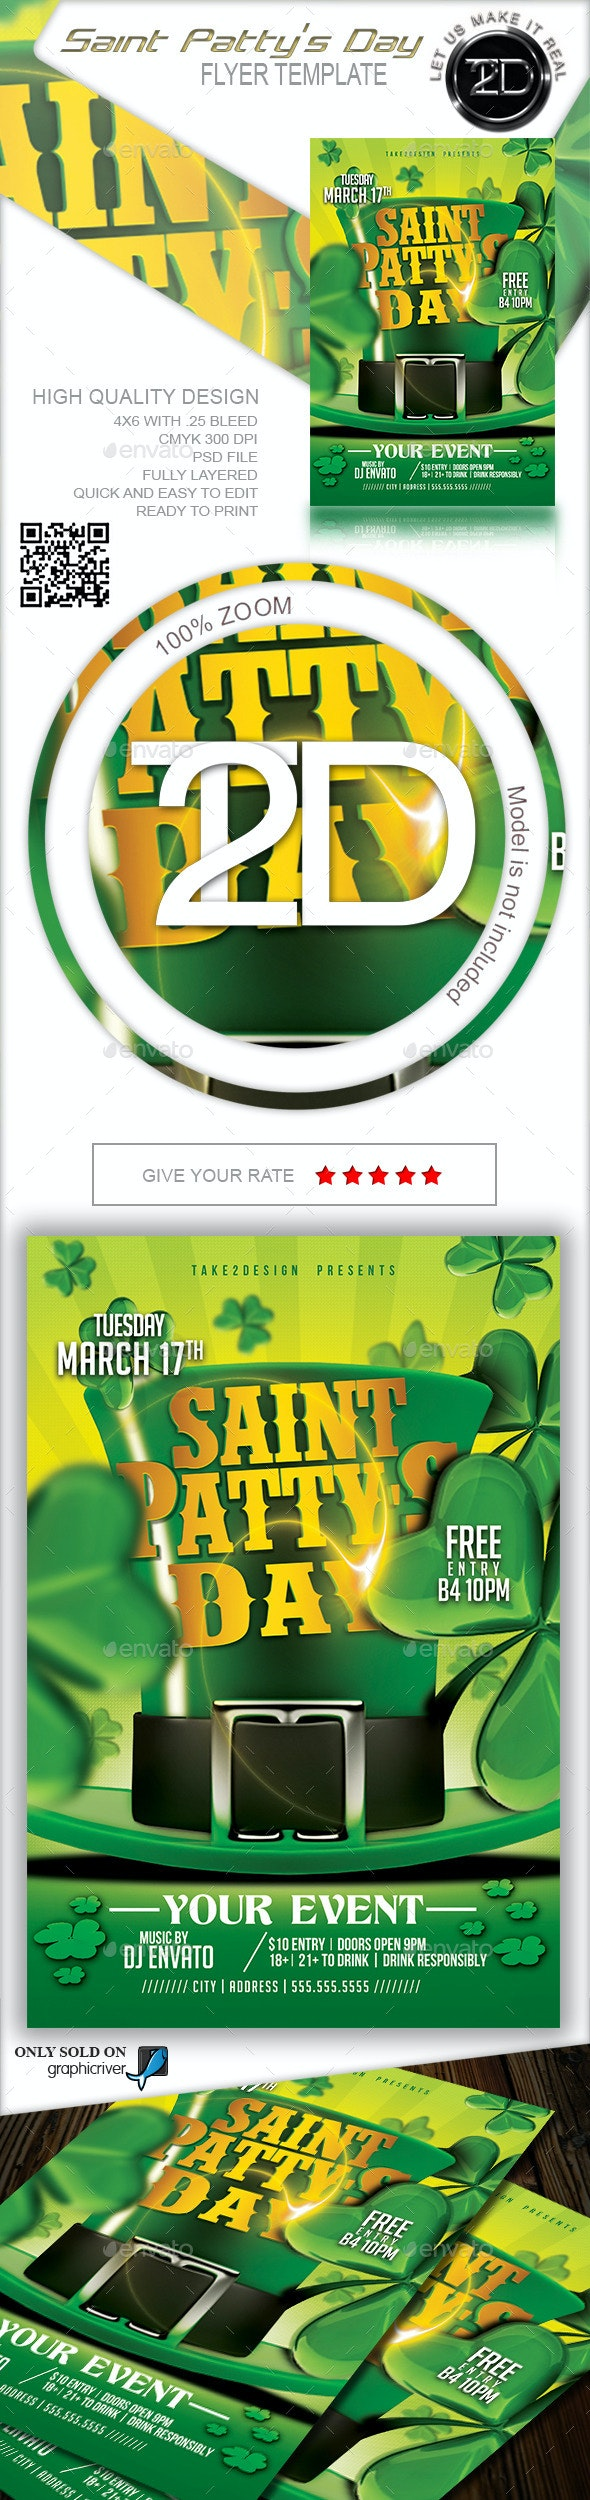 Saint Patty's Day Flyer Template - Clubs & Parties Events